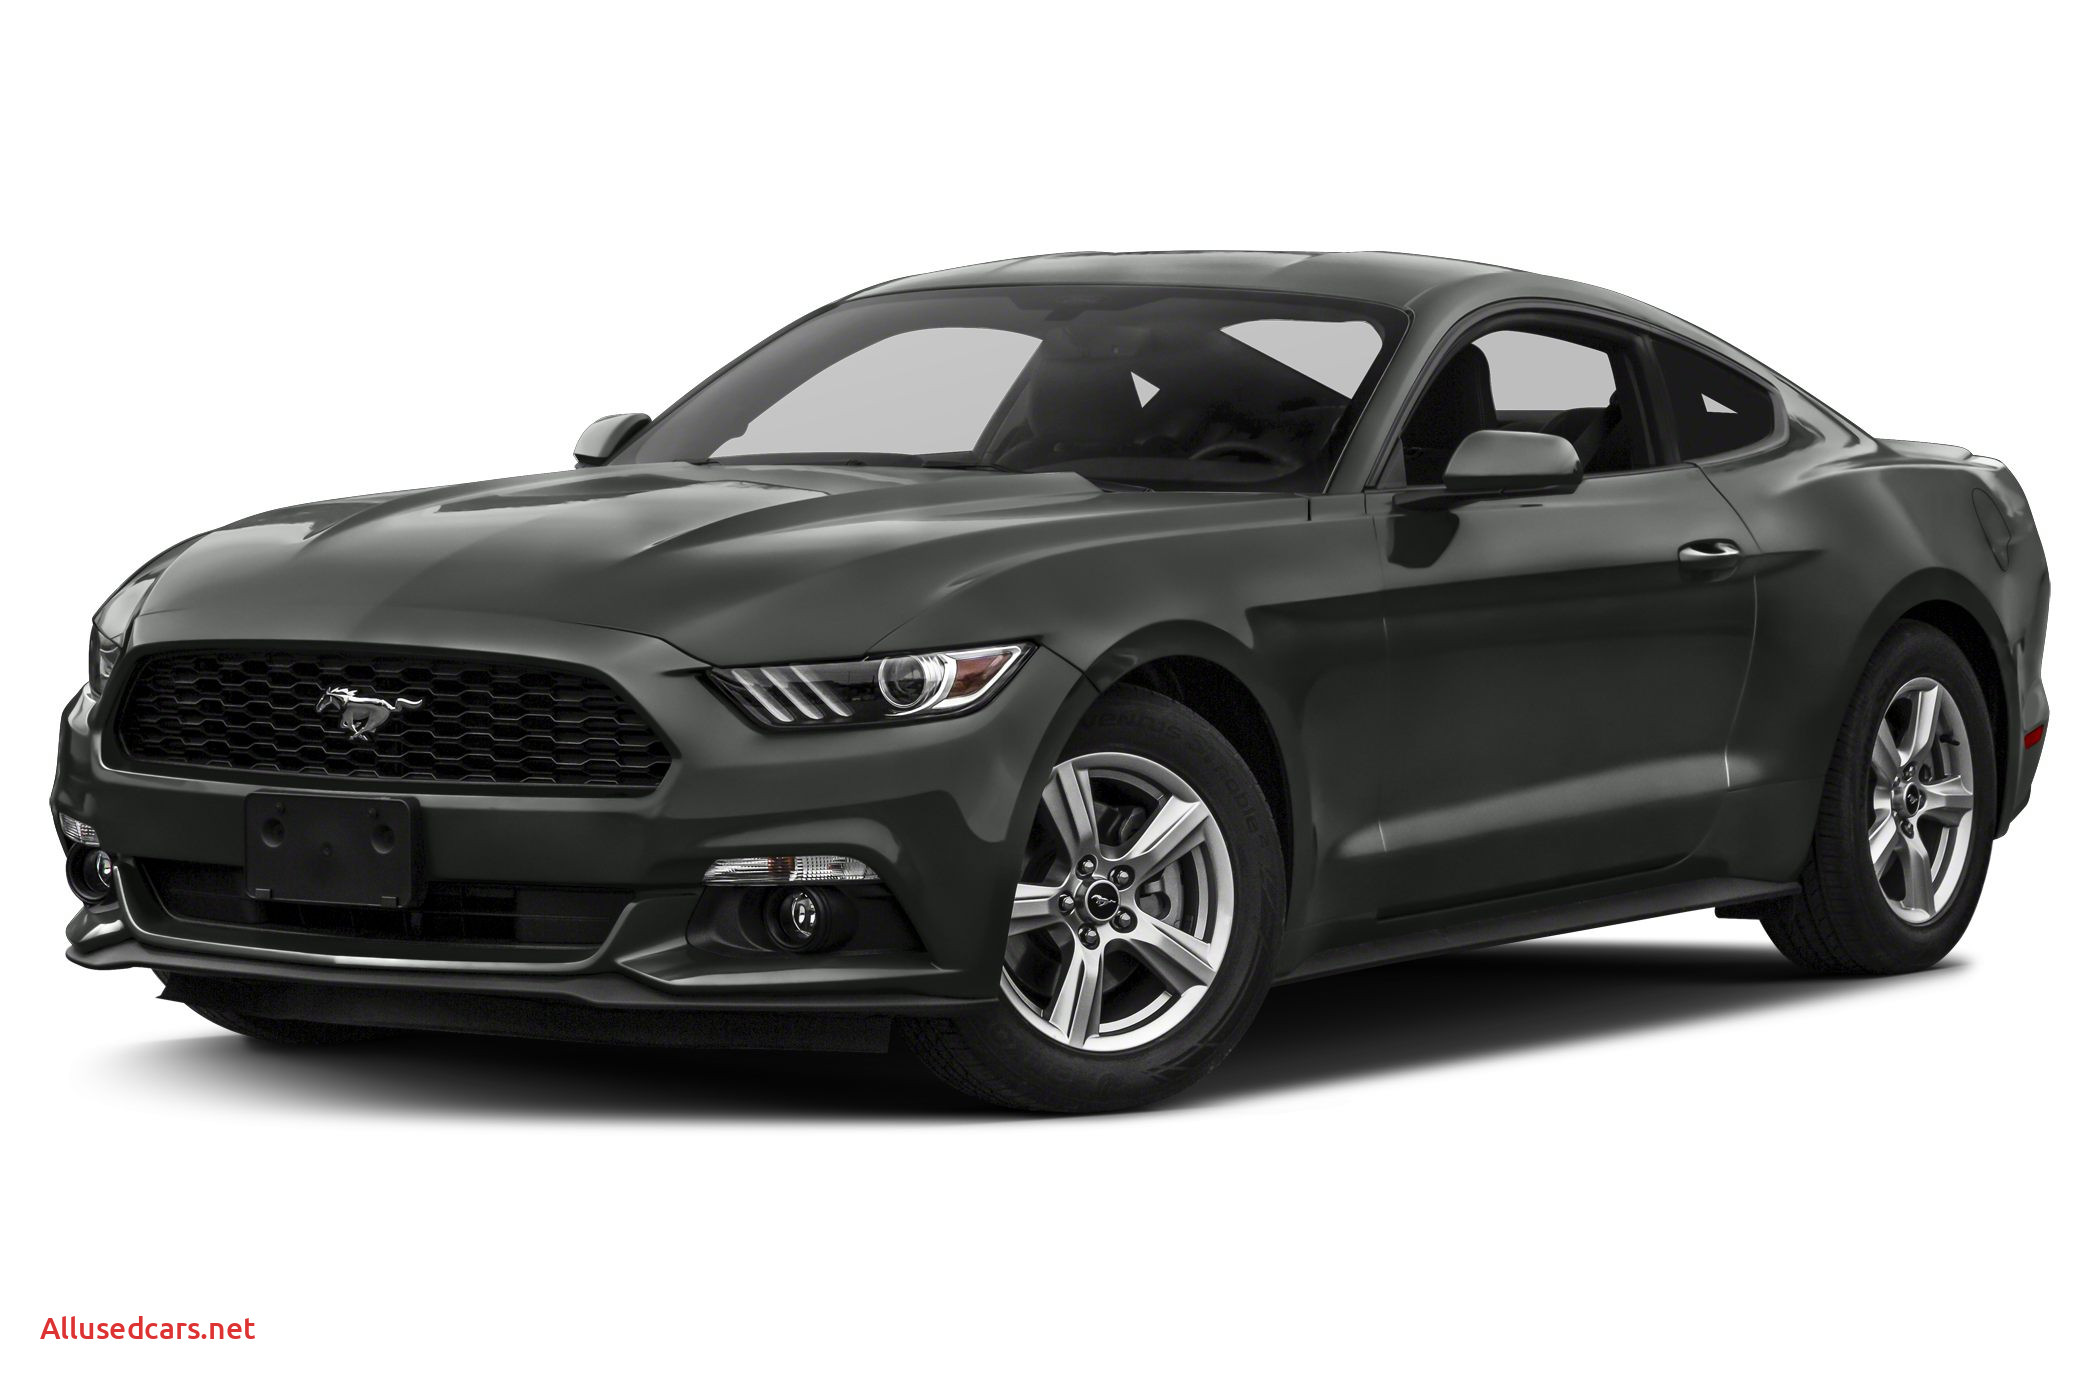 2015 ford Mustang Gt Review Elegant 2015 ford Mustang Safety Features